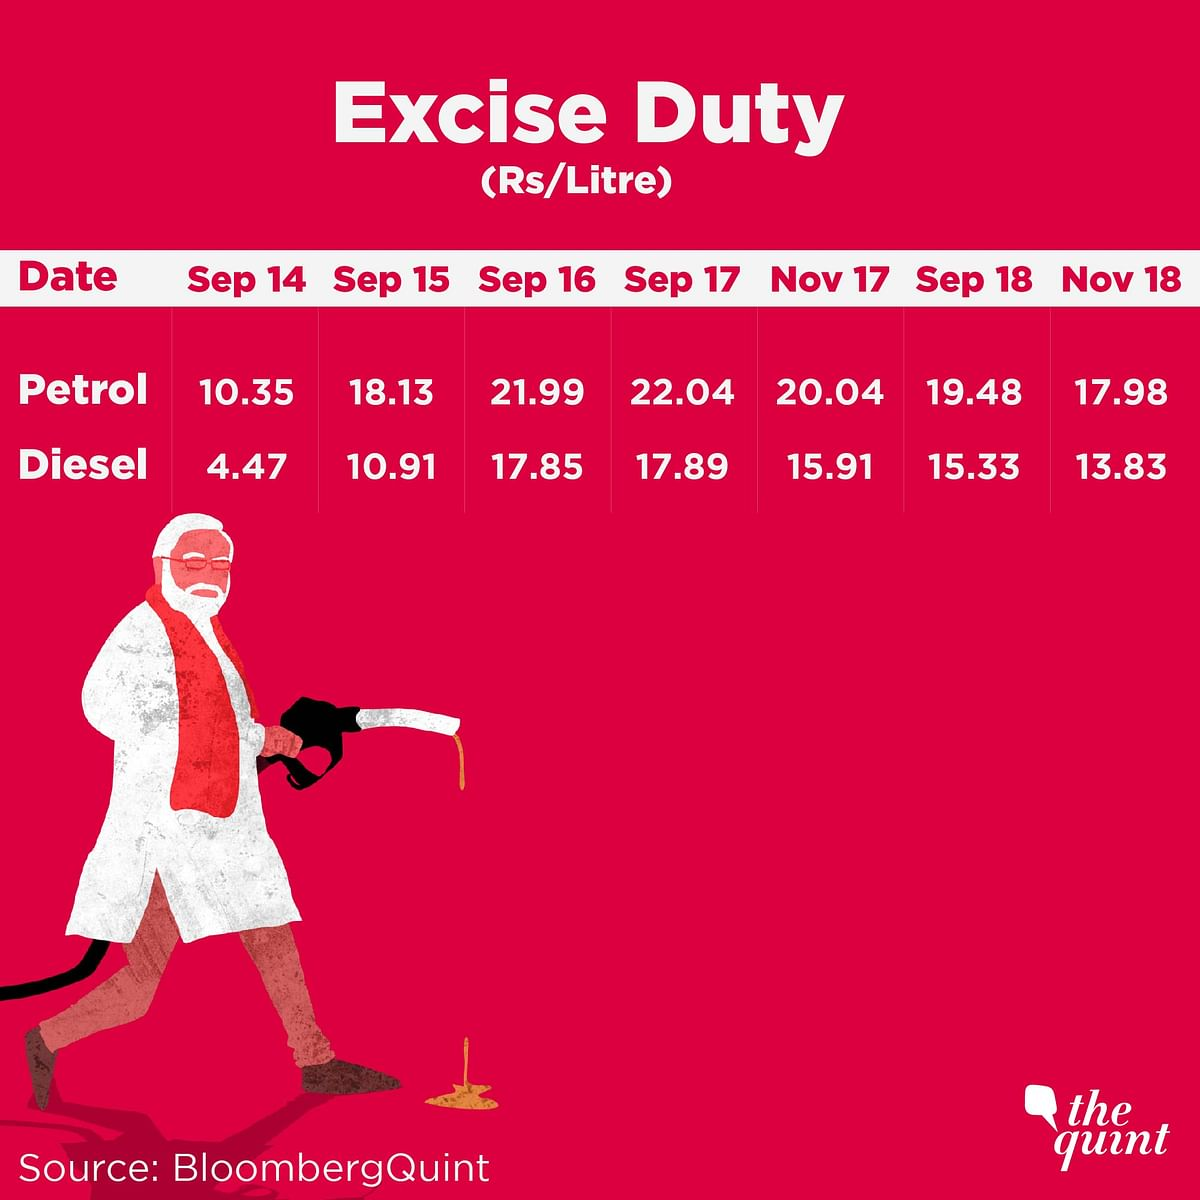 PM's Fuel Folly Costs Rs 1 Lakh Cr in An Hr, Shows Statist Mindset